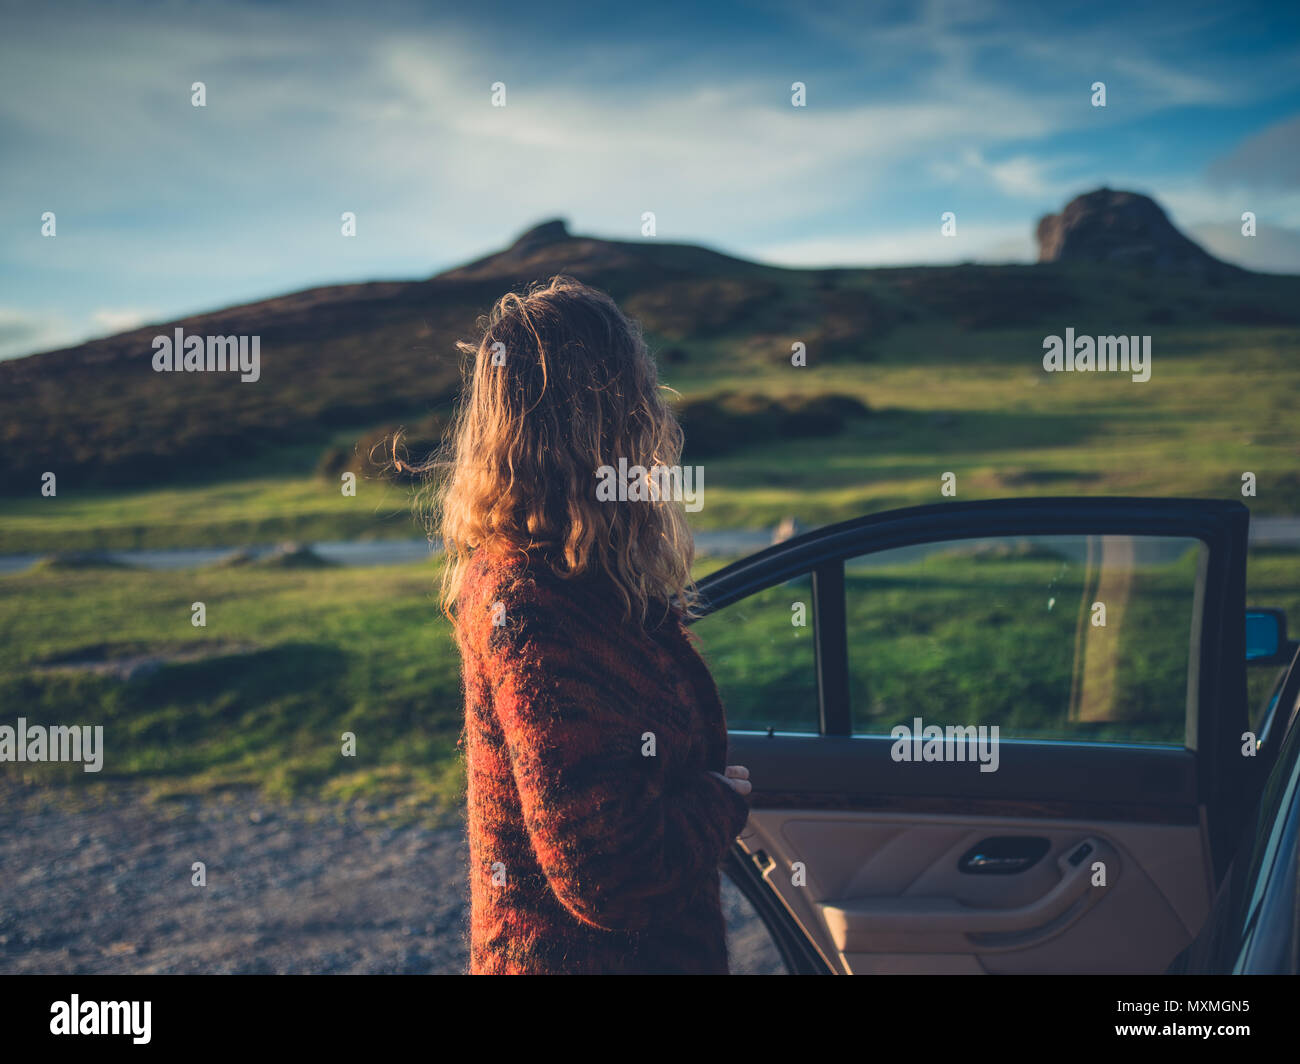 A young woman is opening the door of her car in the wilderness at sunset - Stock Image